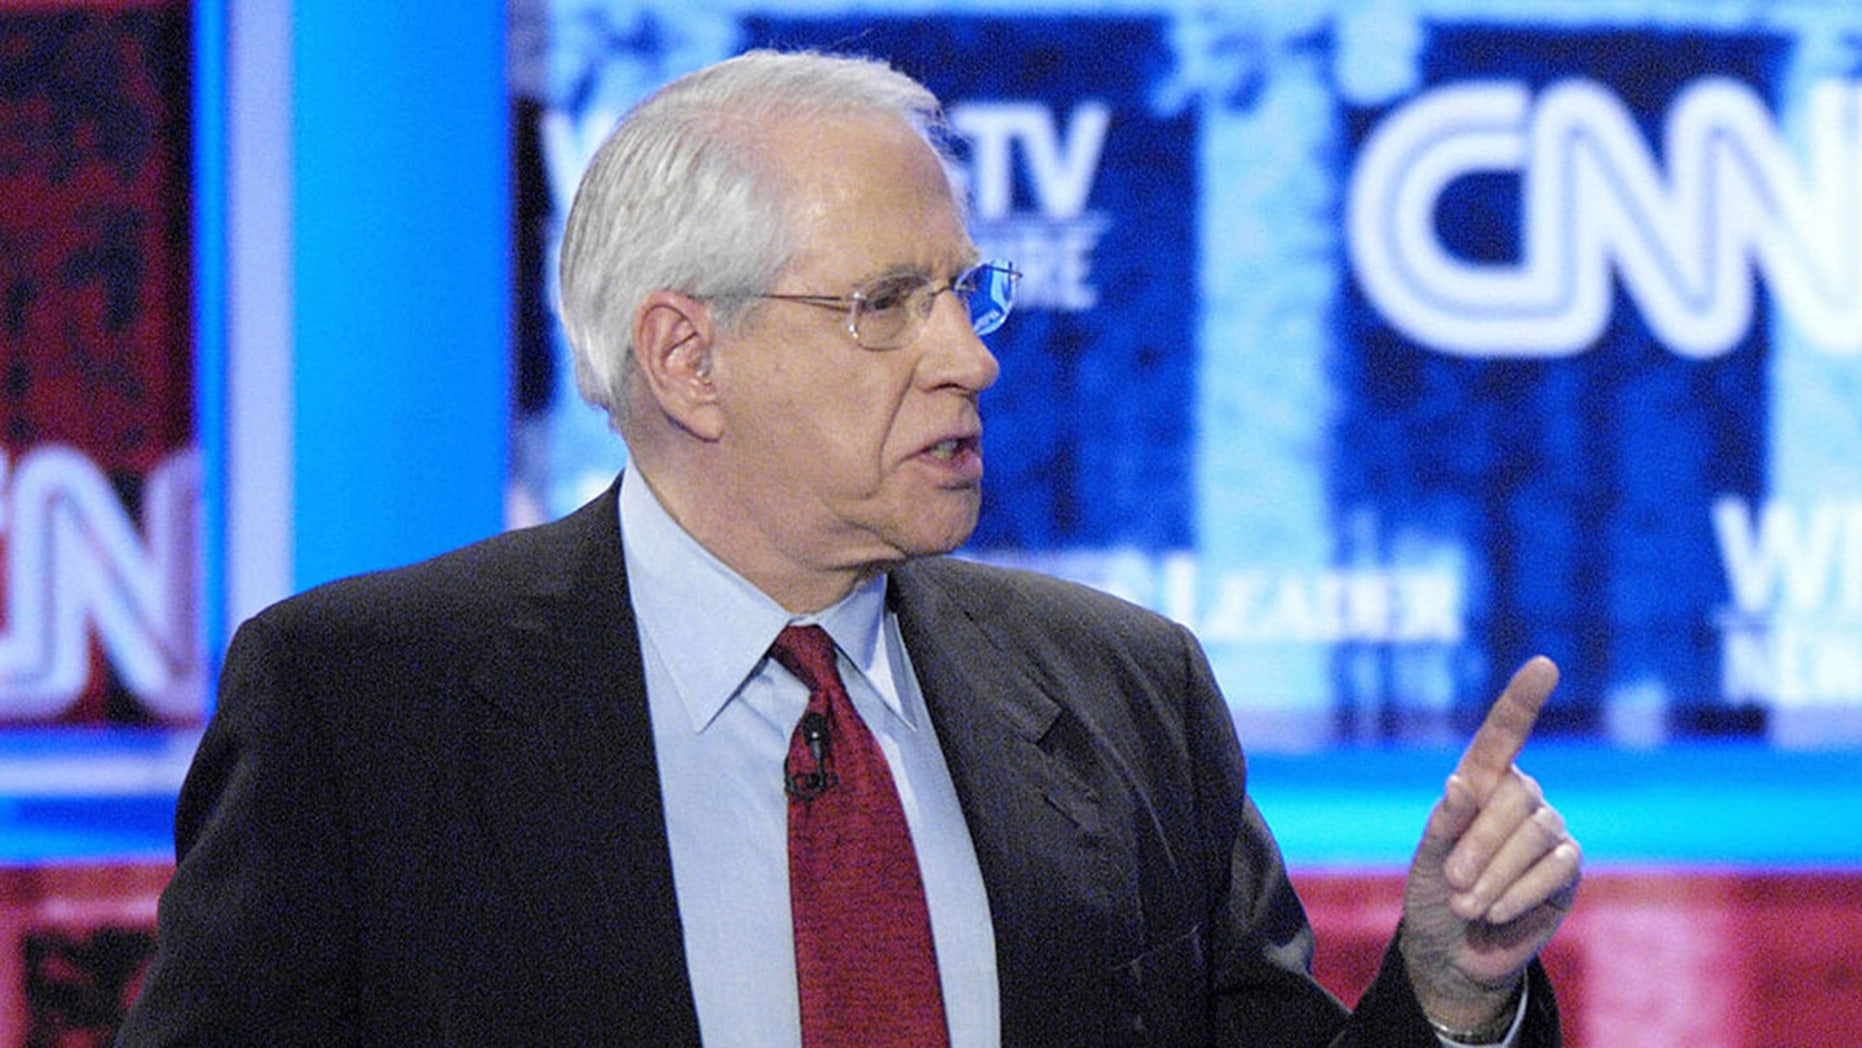 Former Sen. Mike Gravel of Alaska, 88,is running for president, his campaign said, a month after college-age fans eager to push the Democrats further to the left started boosting his Twitter cred. (C.J. GUNTHER/AFP/Getty Images, File)